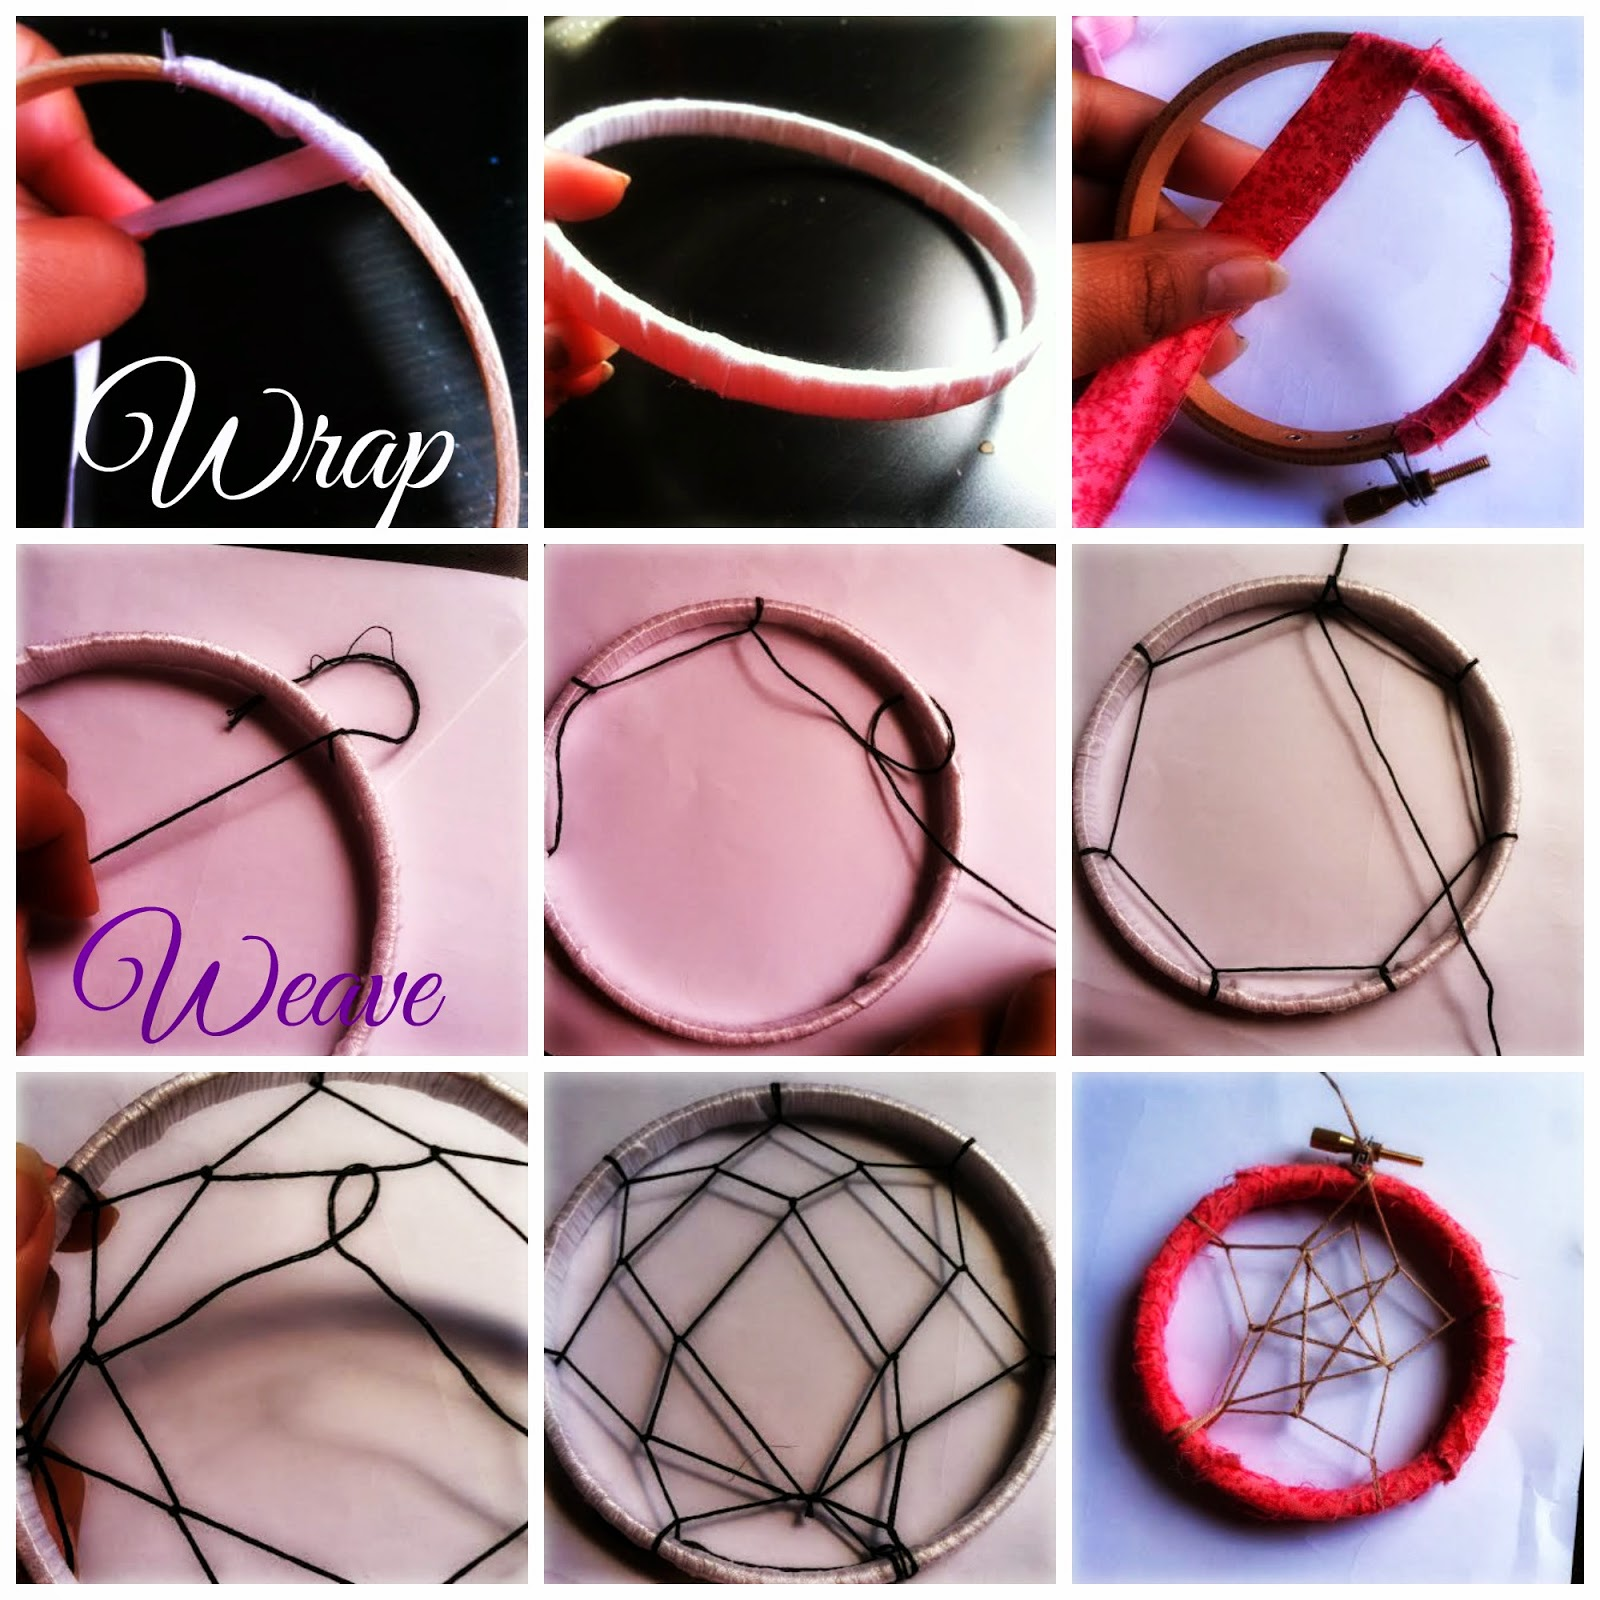 Instructions on how to make a dream catcher picture - Untighten The Hoop And Use Only One Of The Hoops Which Ever You Prefer I Used The Inside Hoop For The Bigger One And I Used The Outside Hoop For The